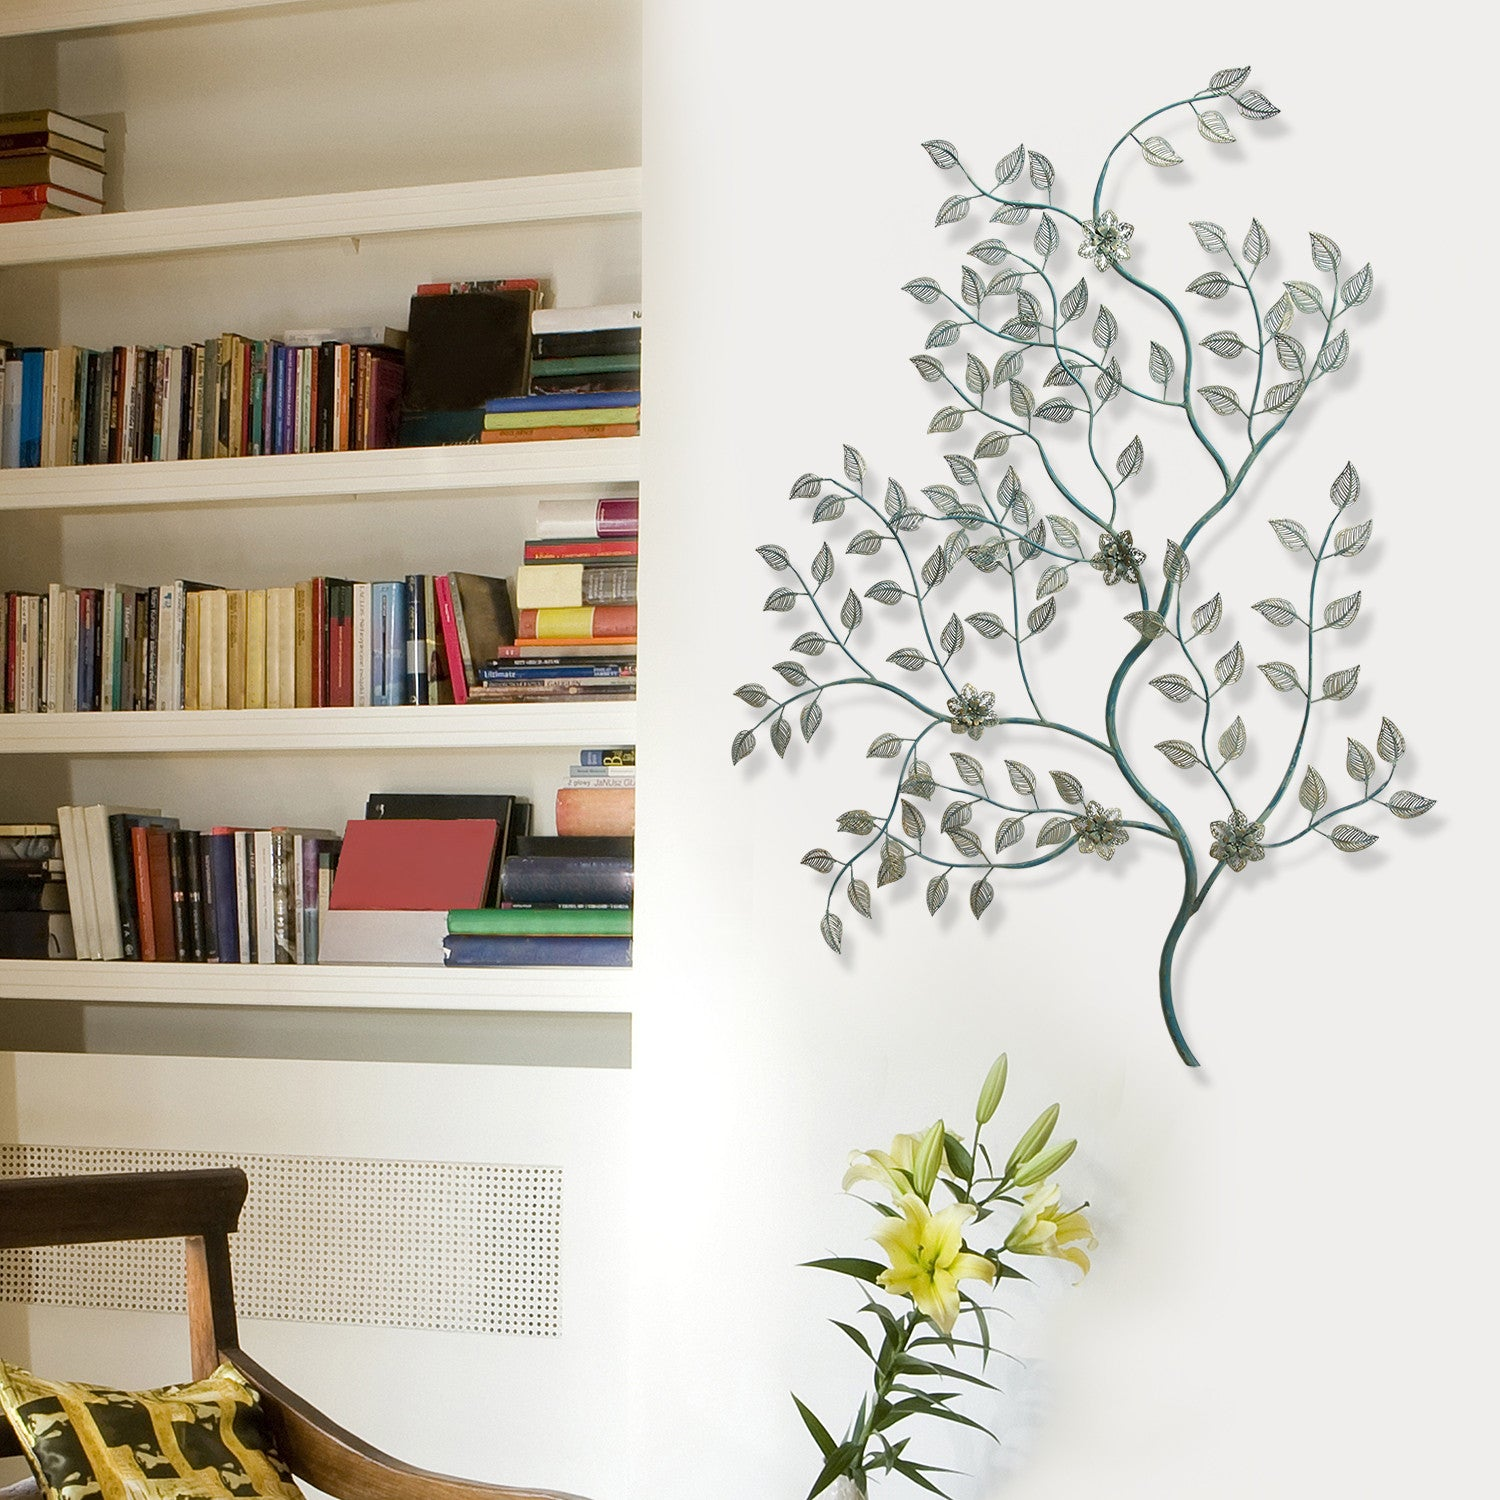 Laser cut leaves on tree branch wall dcor stratton home decor laser cut leaves on tree branch wall dcor amipublicfo Choice Image